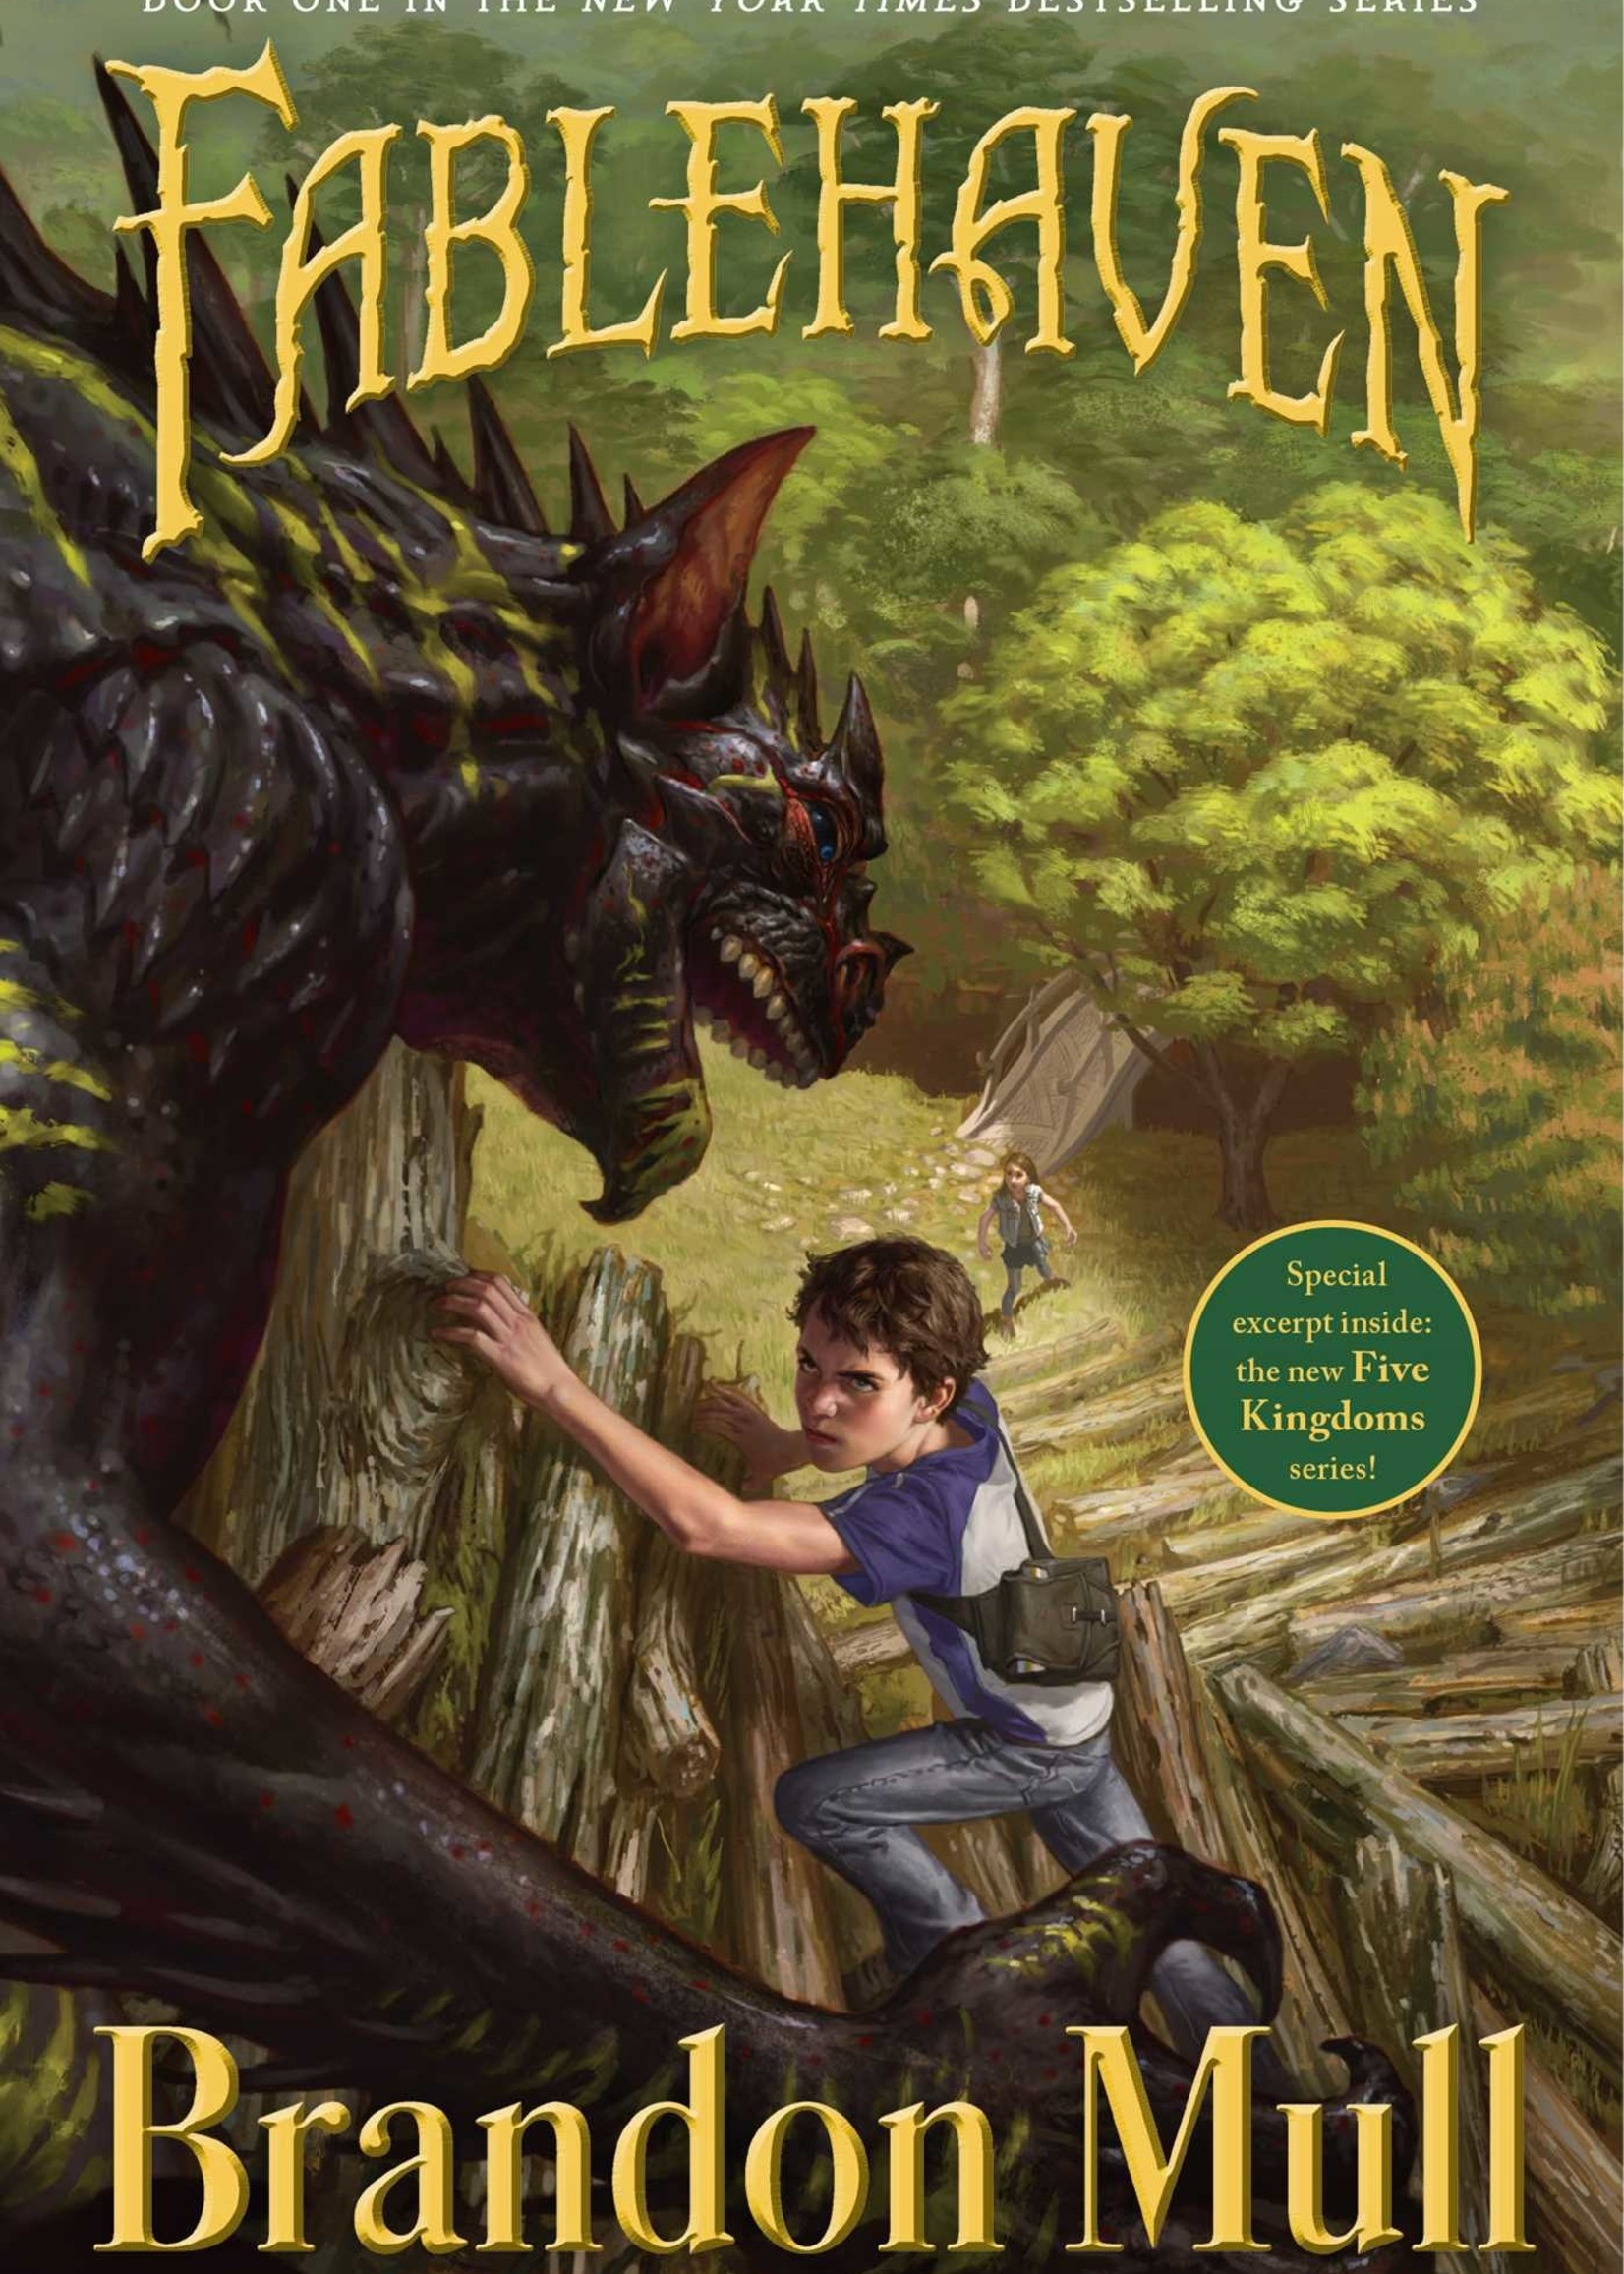 Fablehaven #01 - Paperback